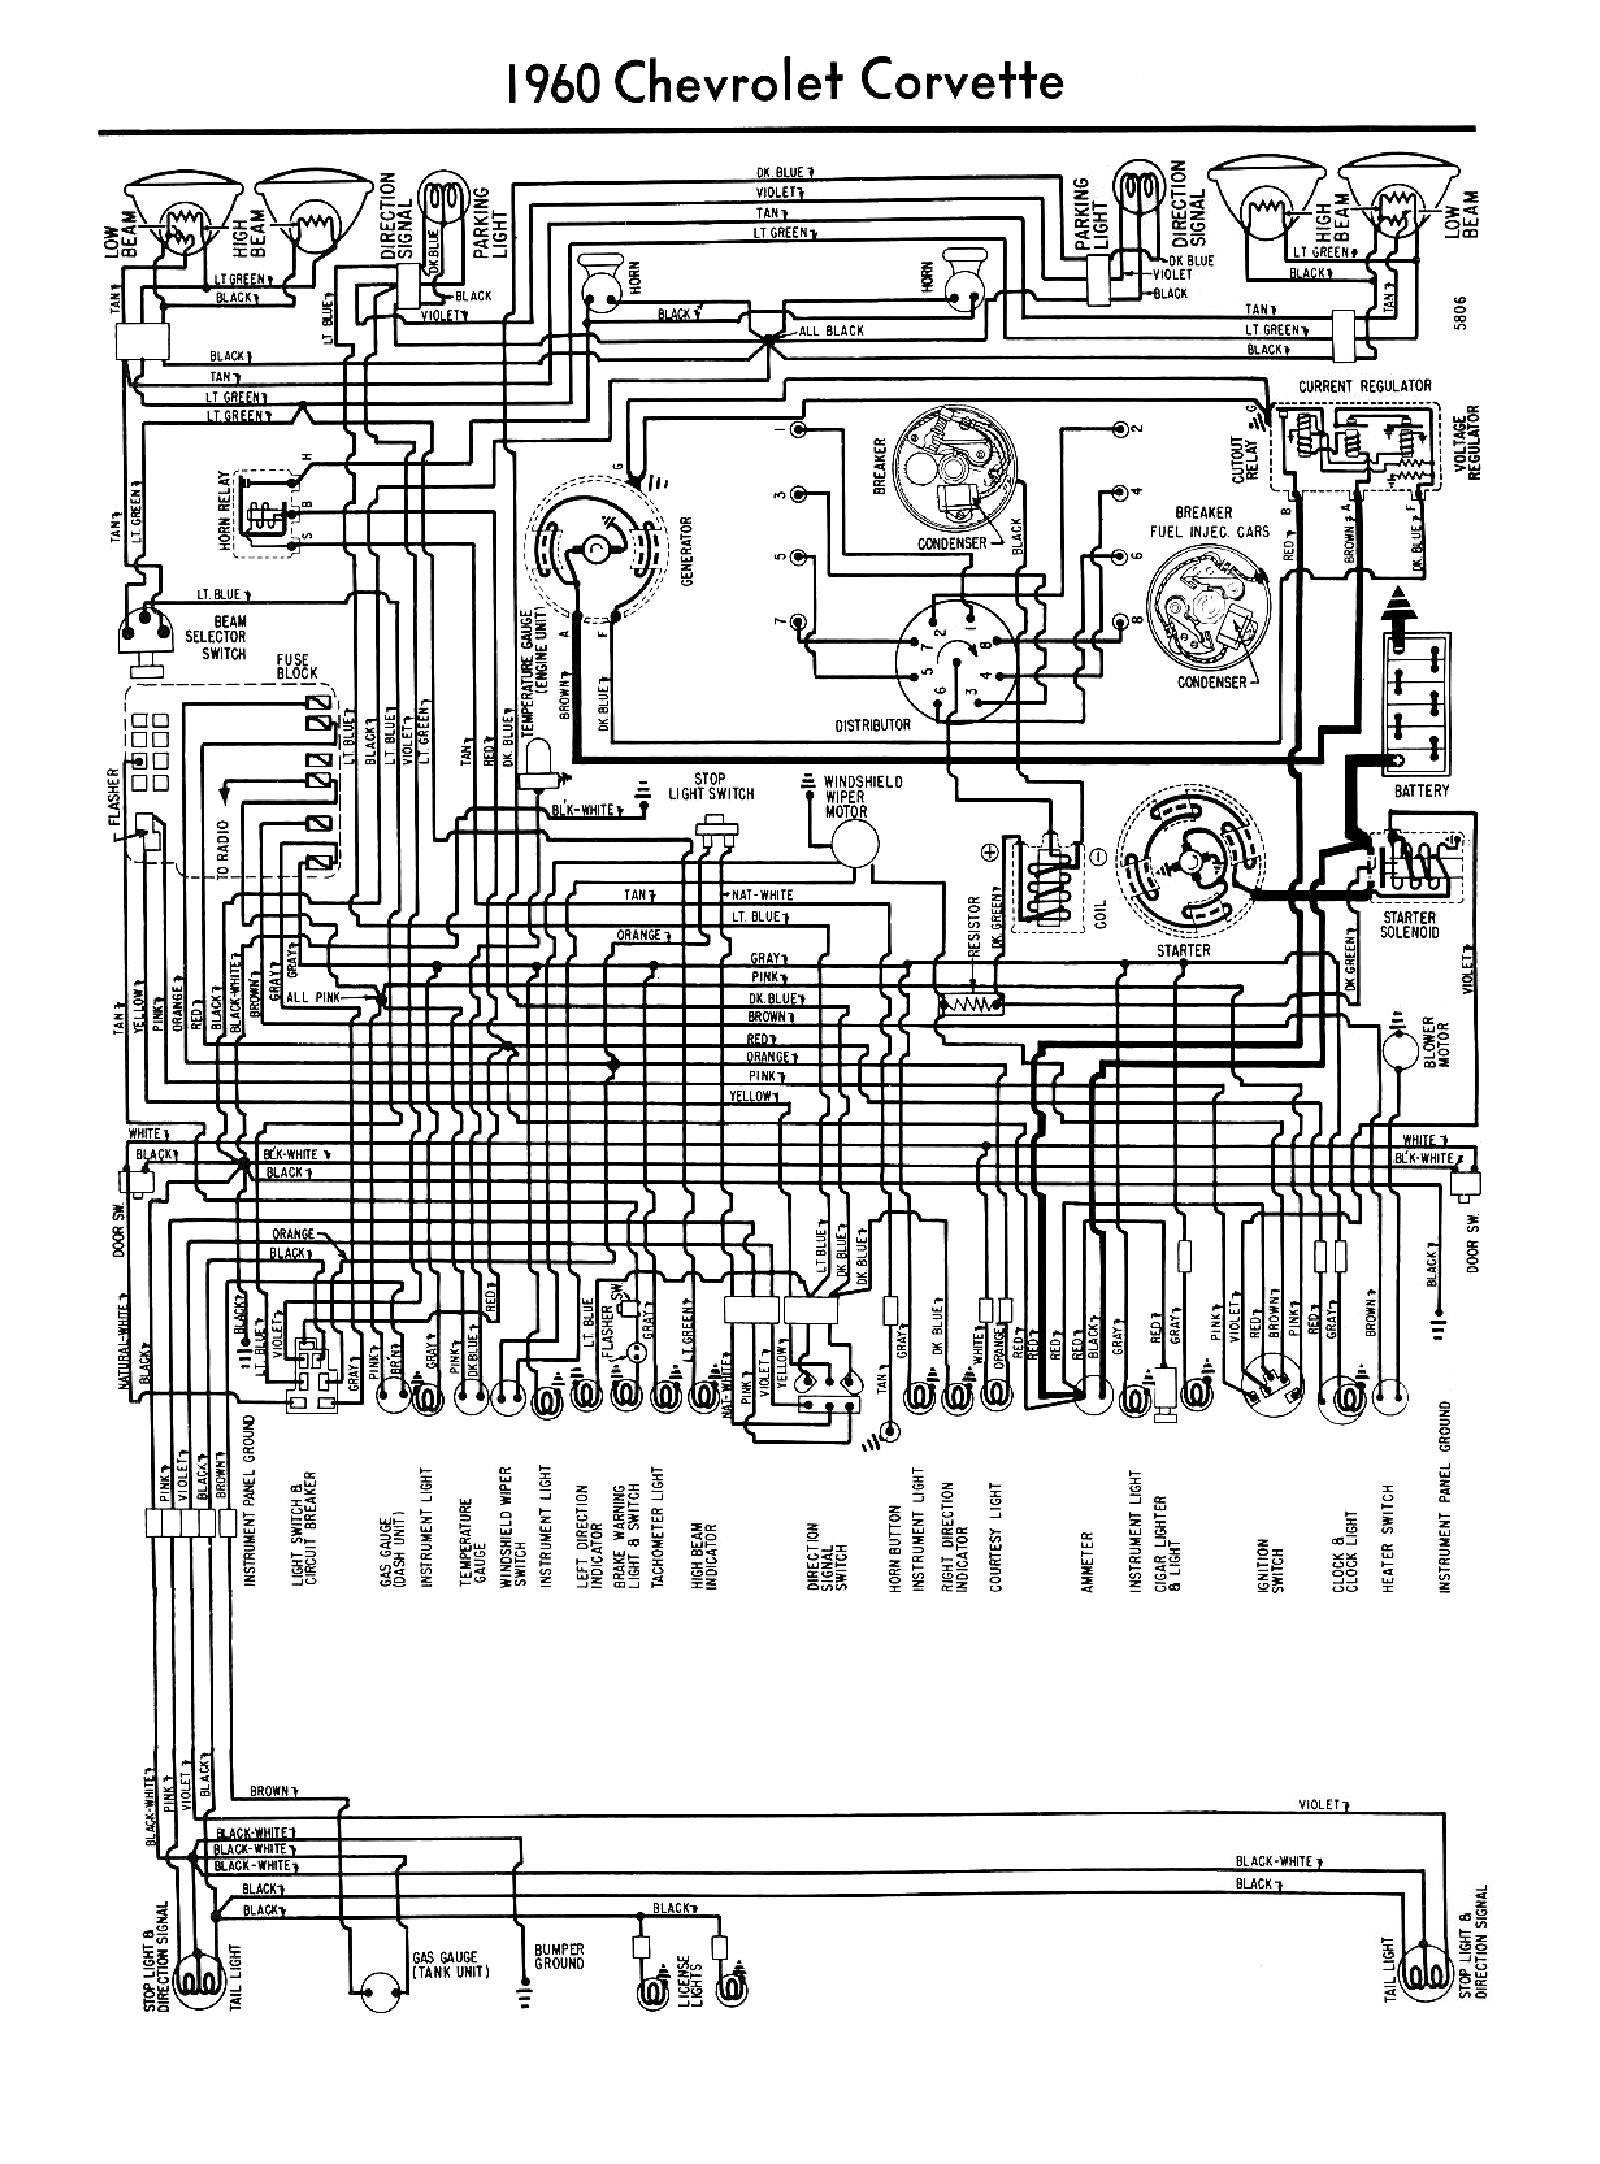 wiring diagram for 1966 corvette the wiring diagram 1966 corvette wiring diagram pdf 1966 wiring diagrams for wiring diagram